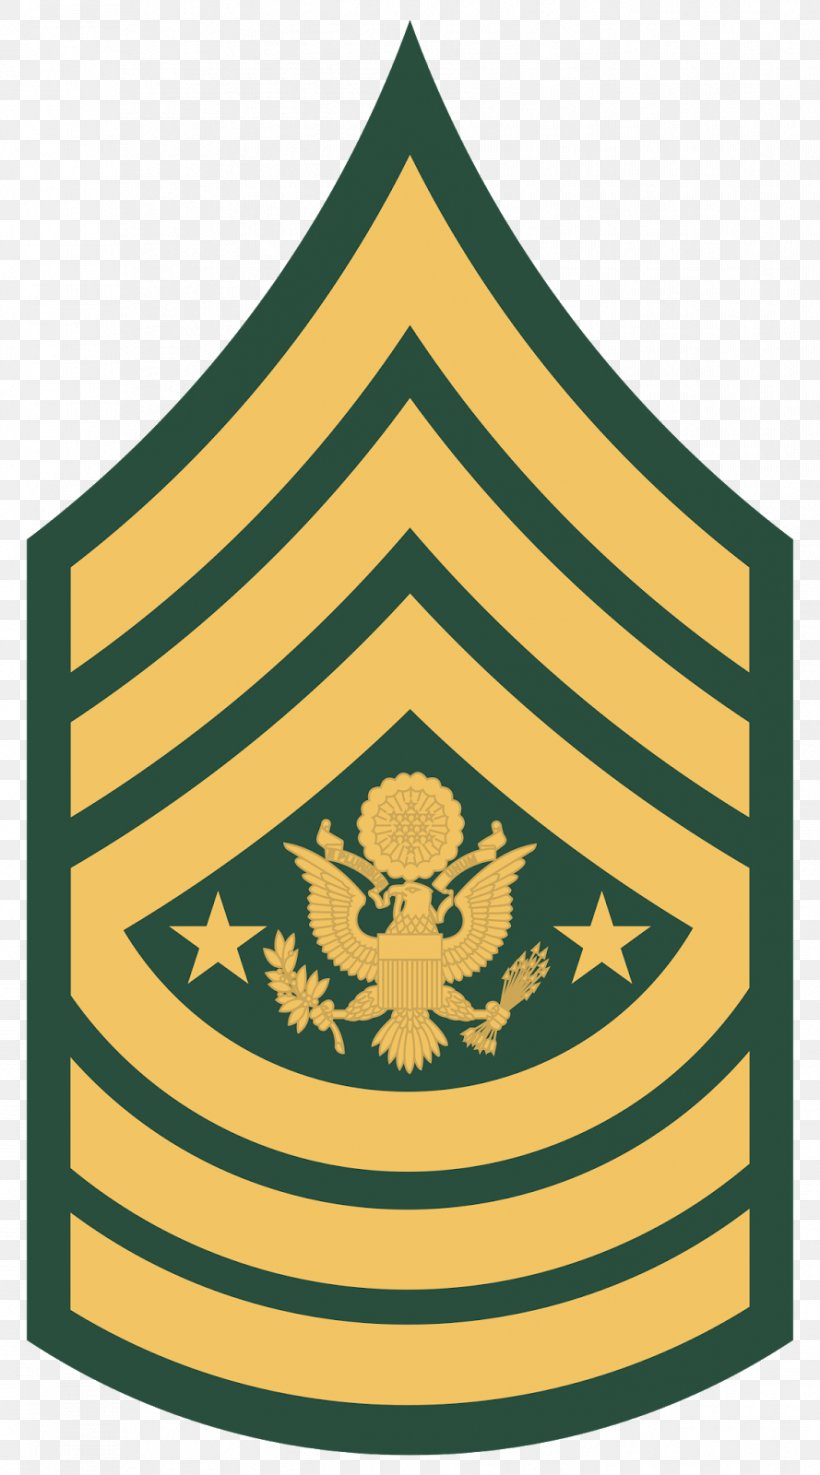 Sergeant Major Of The Army Non-commissioned Officer Military Rank, PNG, 889x1600px, Sergeant Major Of The Army, Area, Army, Army Officer, Brand Download Free